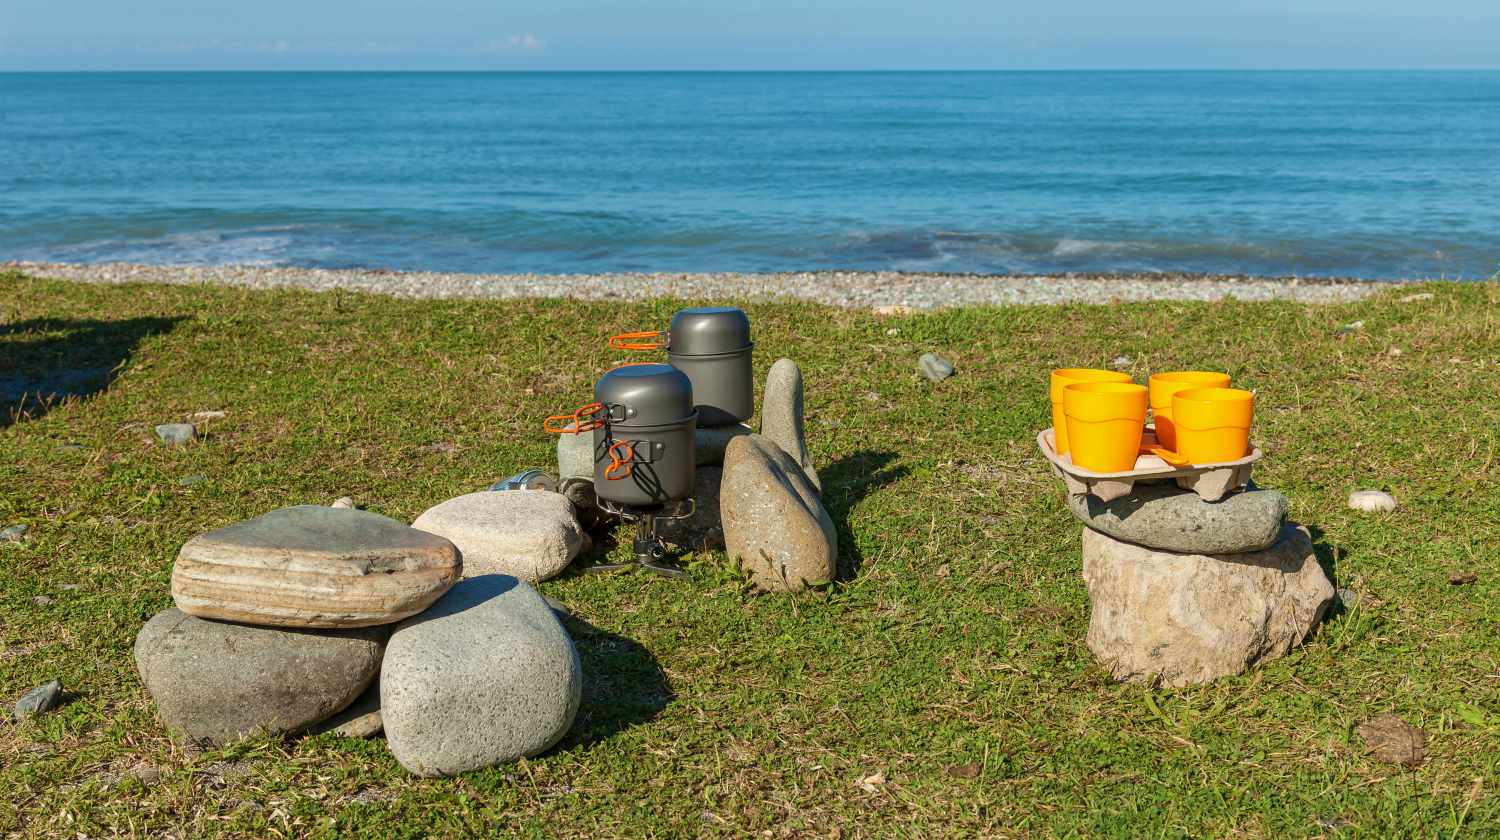 Camping utensils for making coffee and food on a trip | Smart Beach Camping Tips And Tricks | Featured